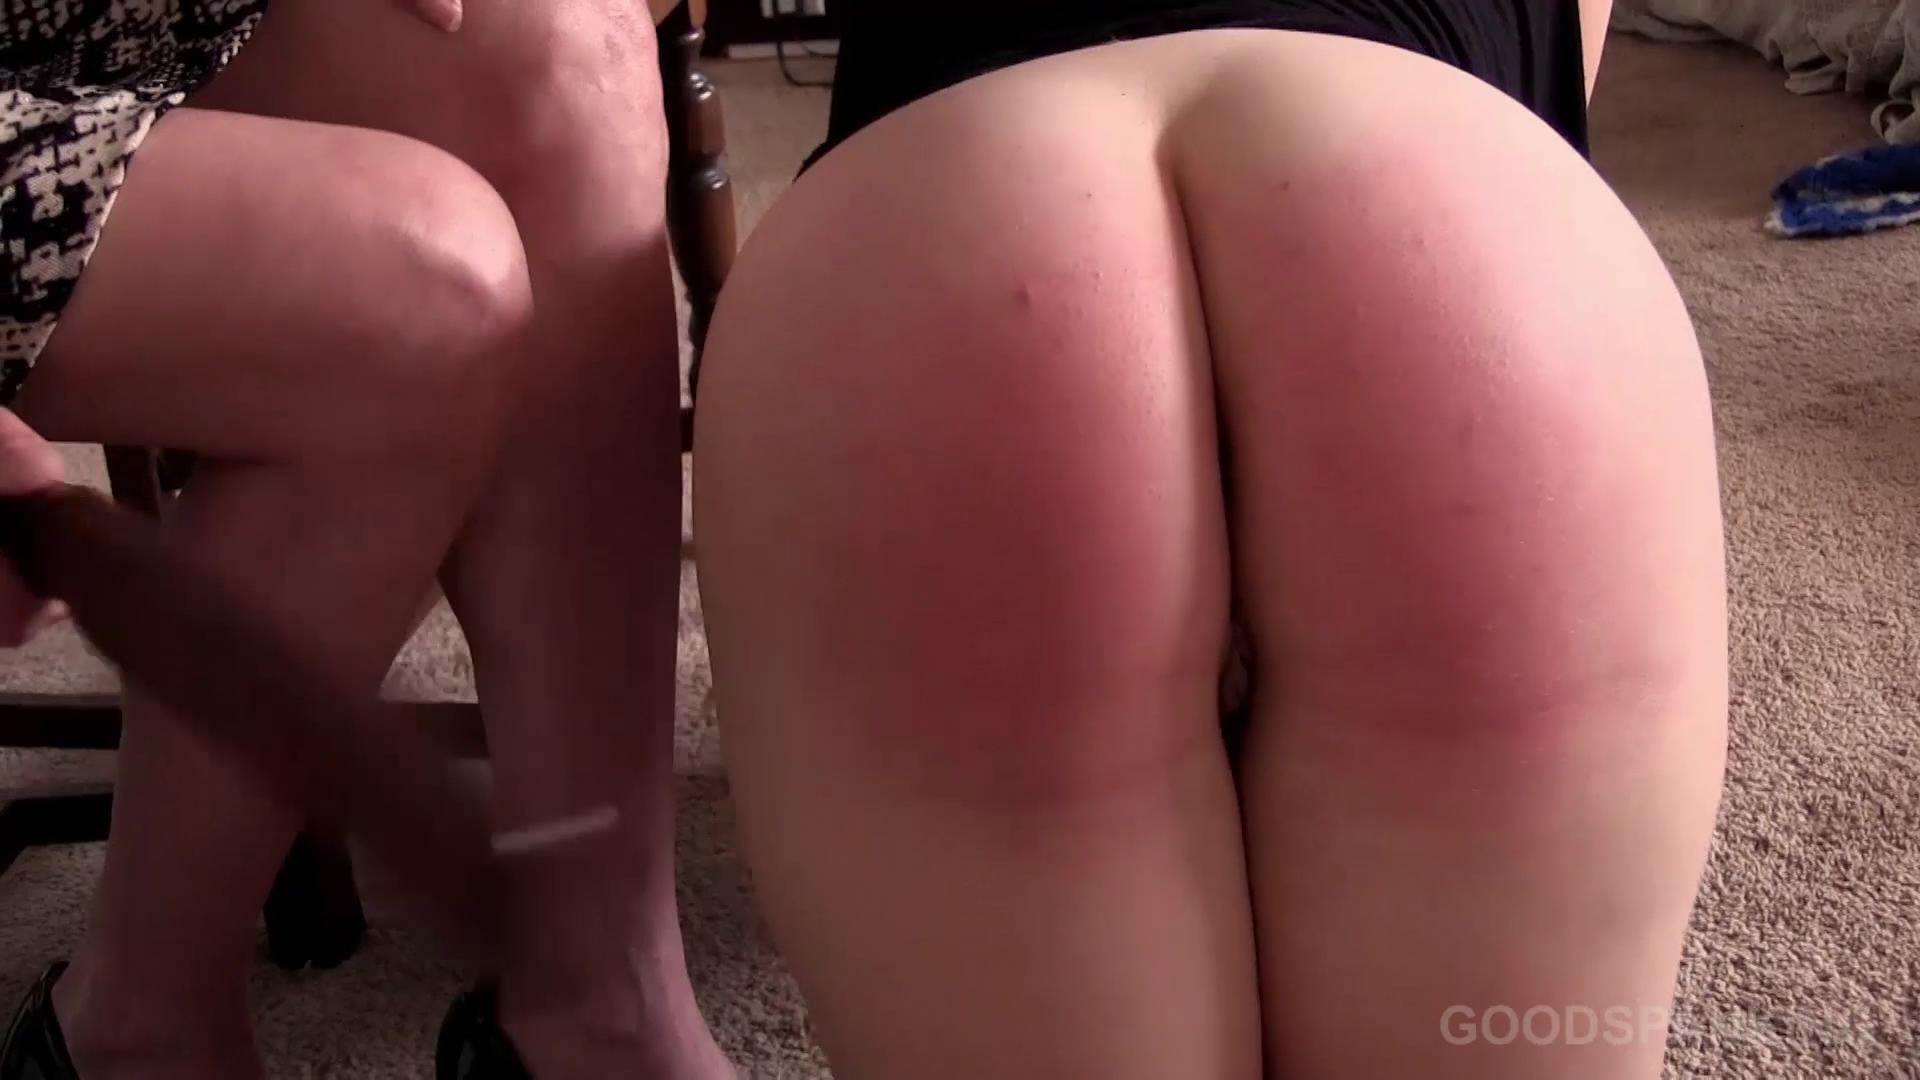 Good Spanking – MP4/Full HD – CHELSEA PFEIFFER,NIKKI STEELE – ADORABLY SPANKABLE – PART TWO | JUL. 19, 19